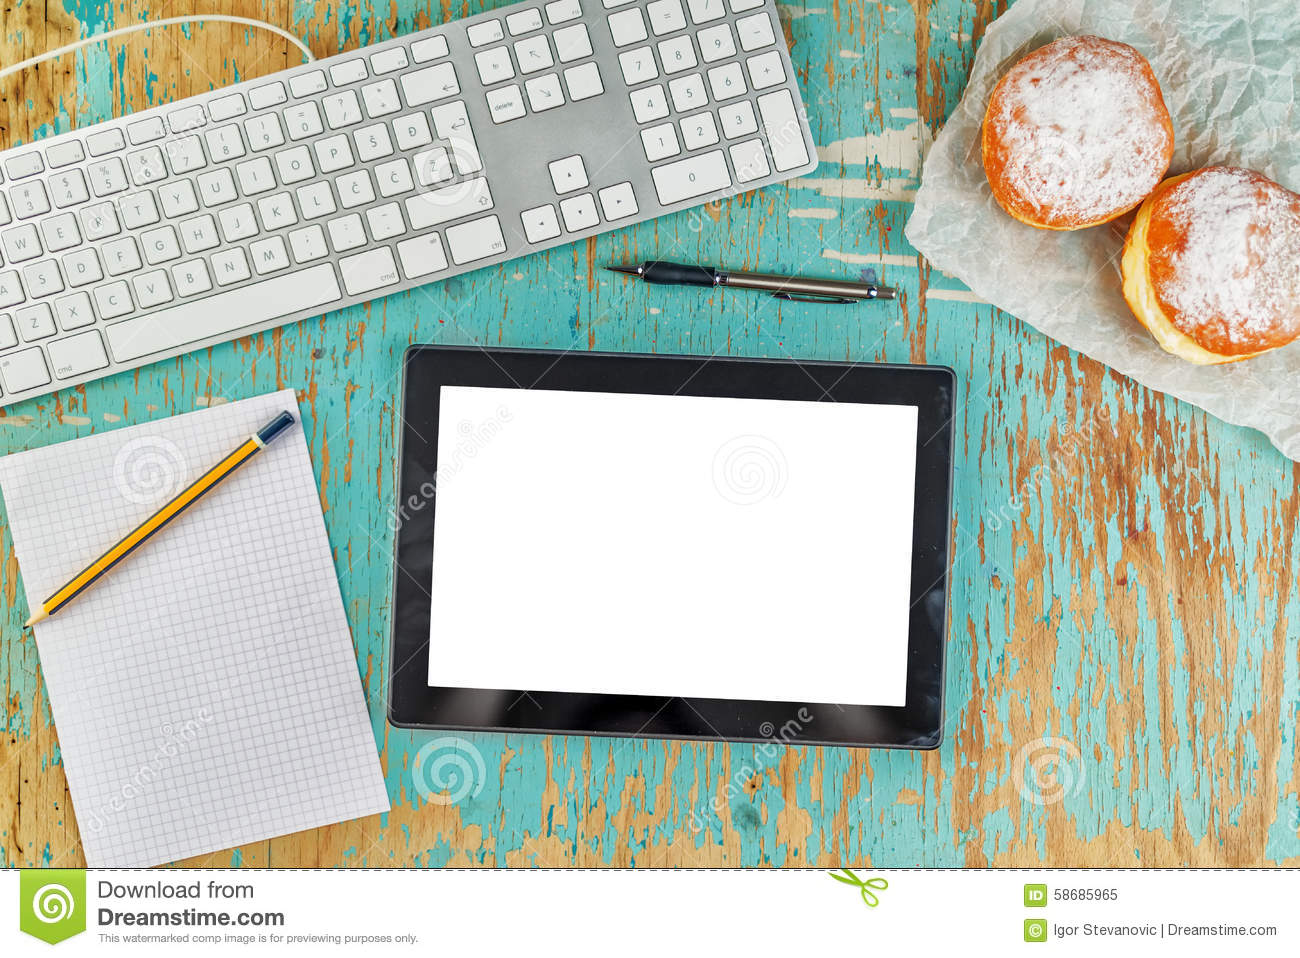 Graphic designer rustic tabletop workspace stock photo for Table graphic design